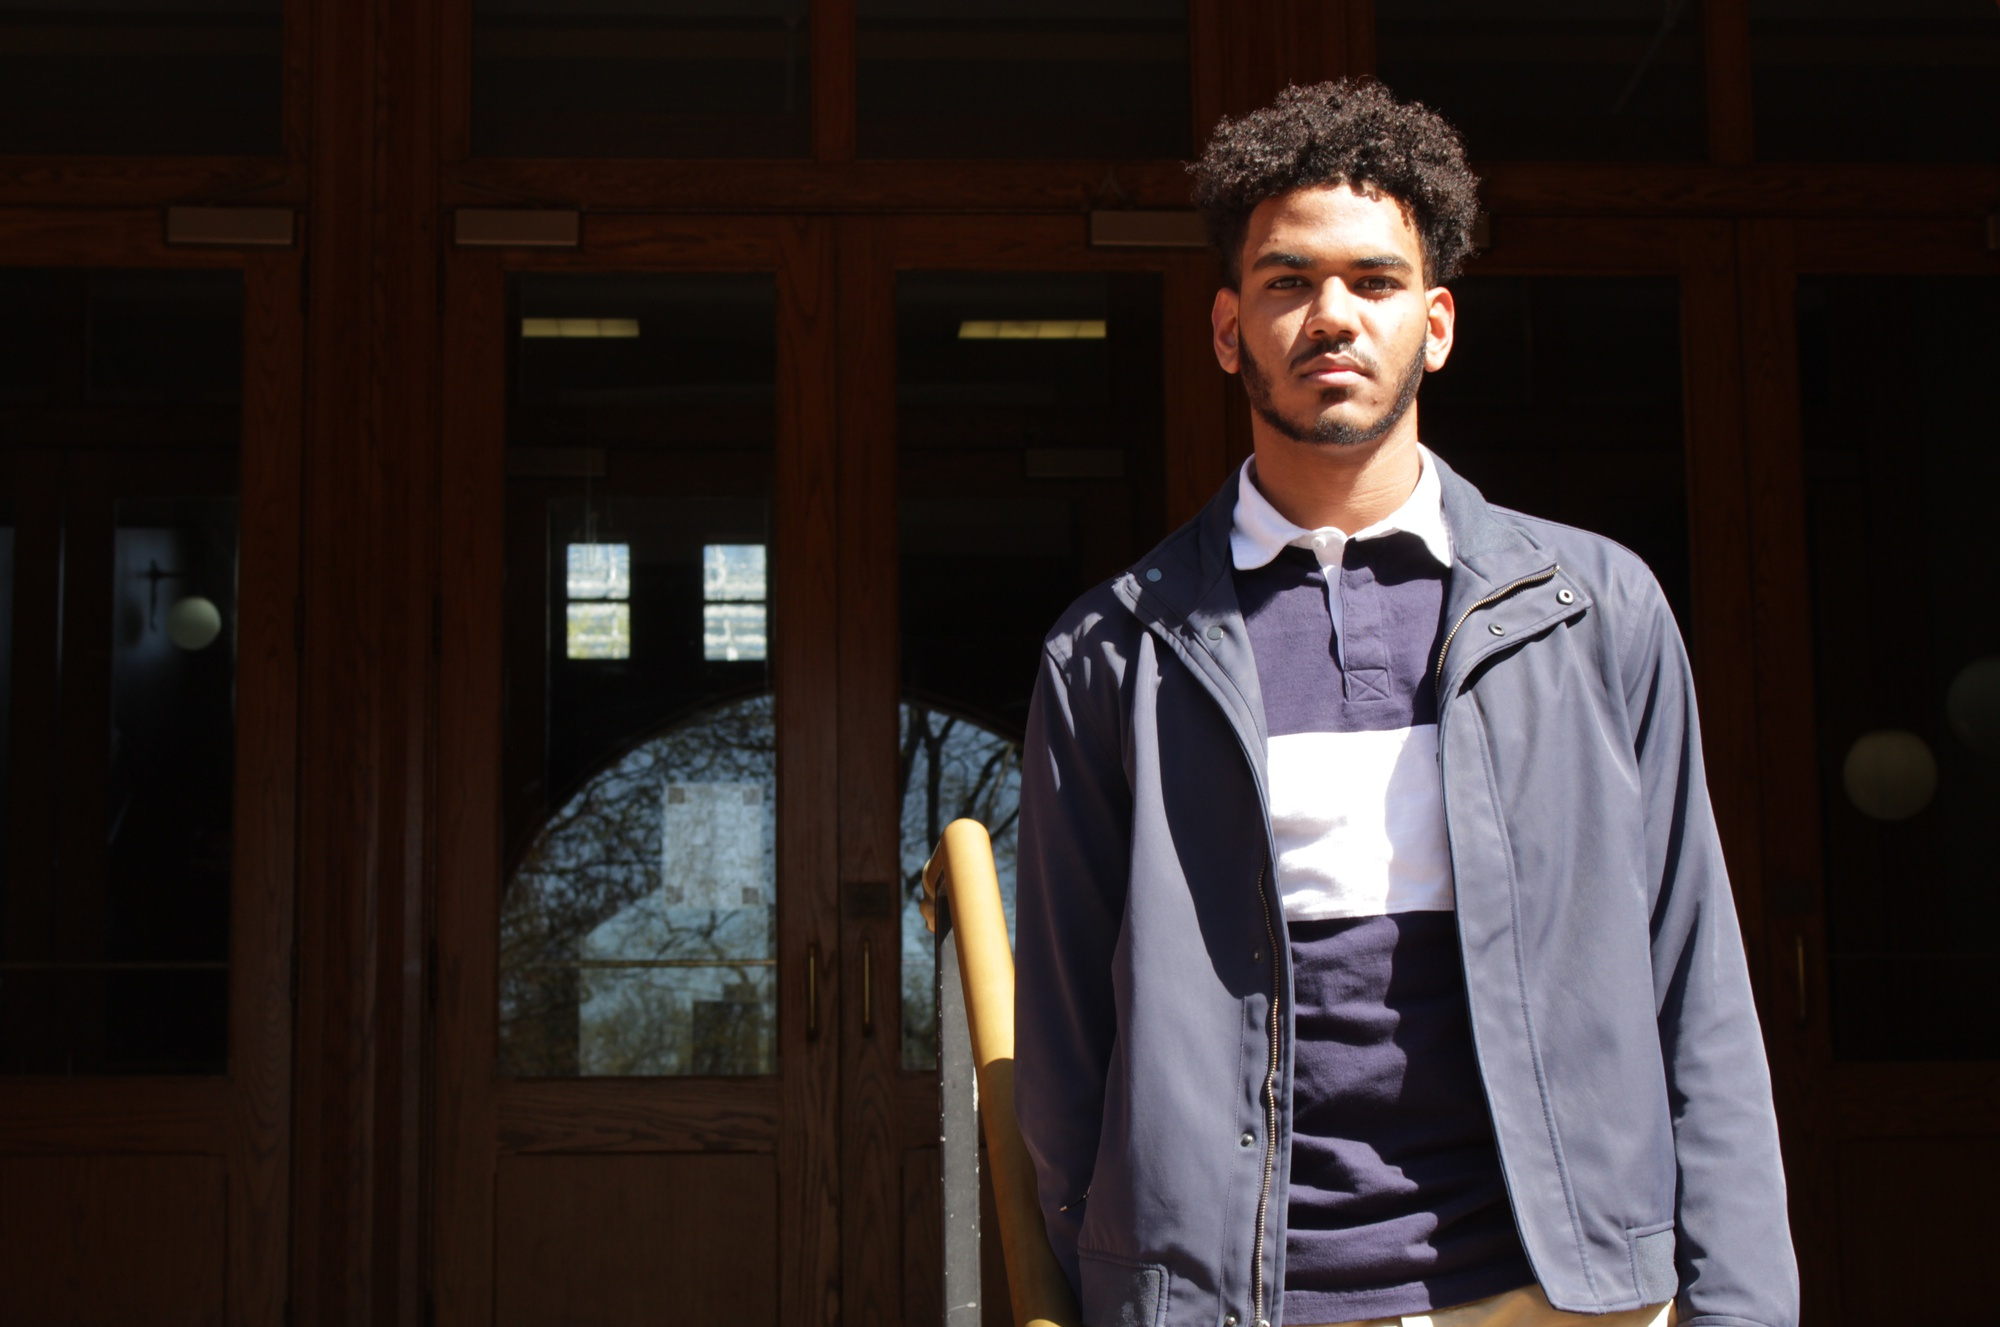 Ahmad S. M. Saaid '21 says he wasn't surprised by the coup.